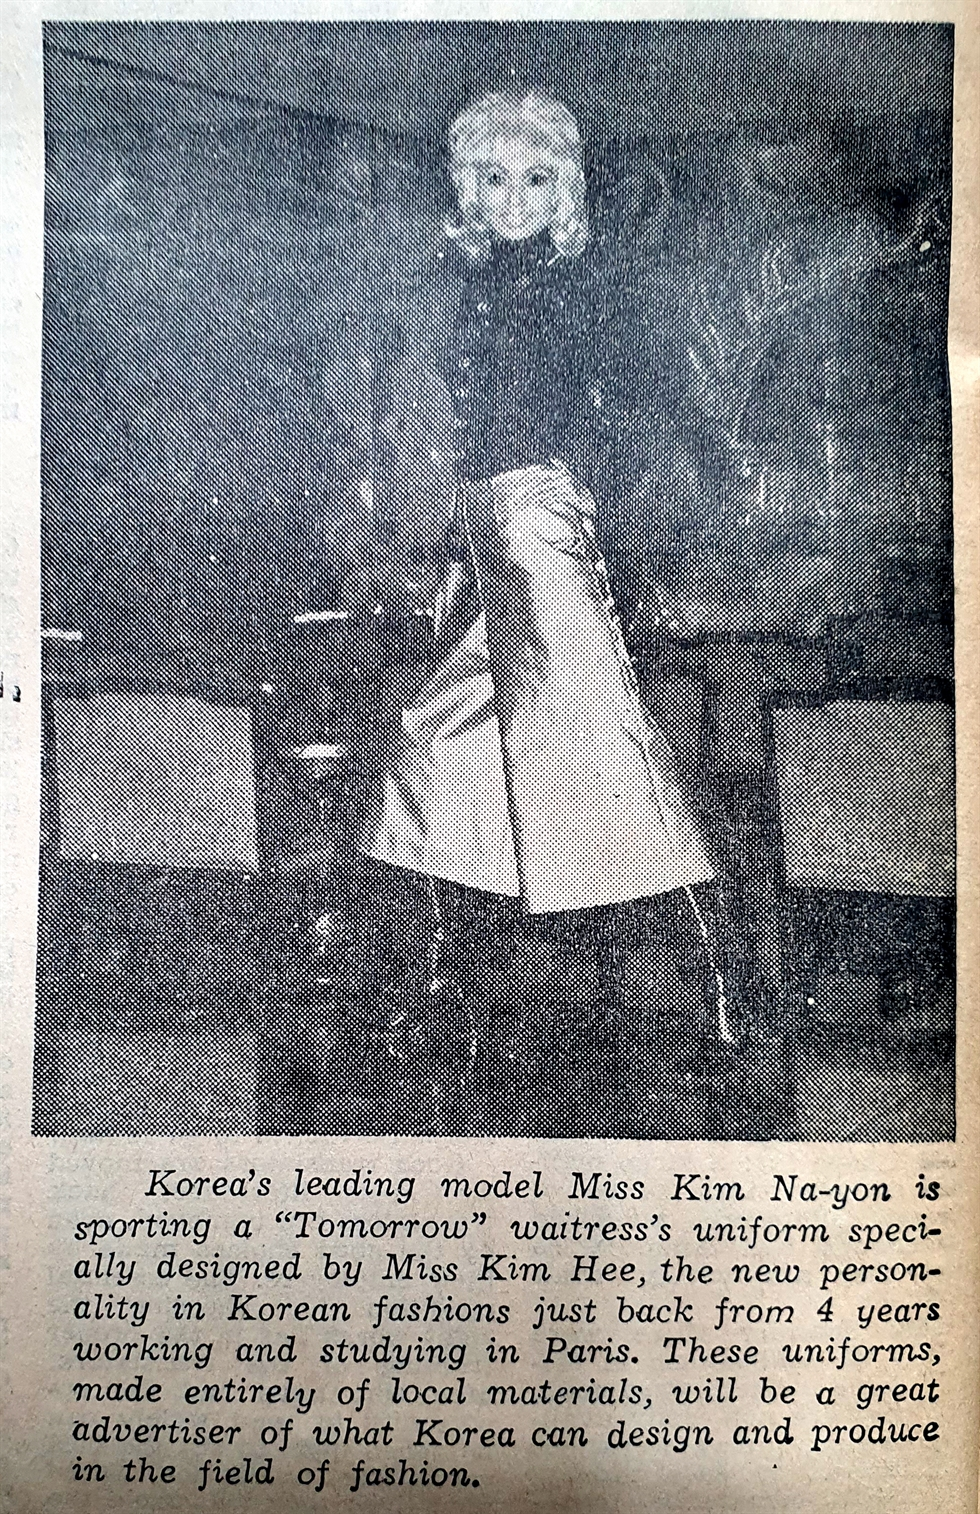 The Wild Five, published in The Korea Times Jan. 1, 1971. / Korea Times Archive